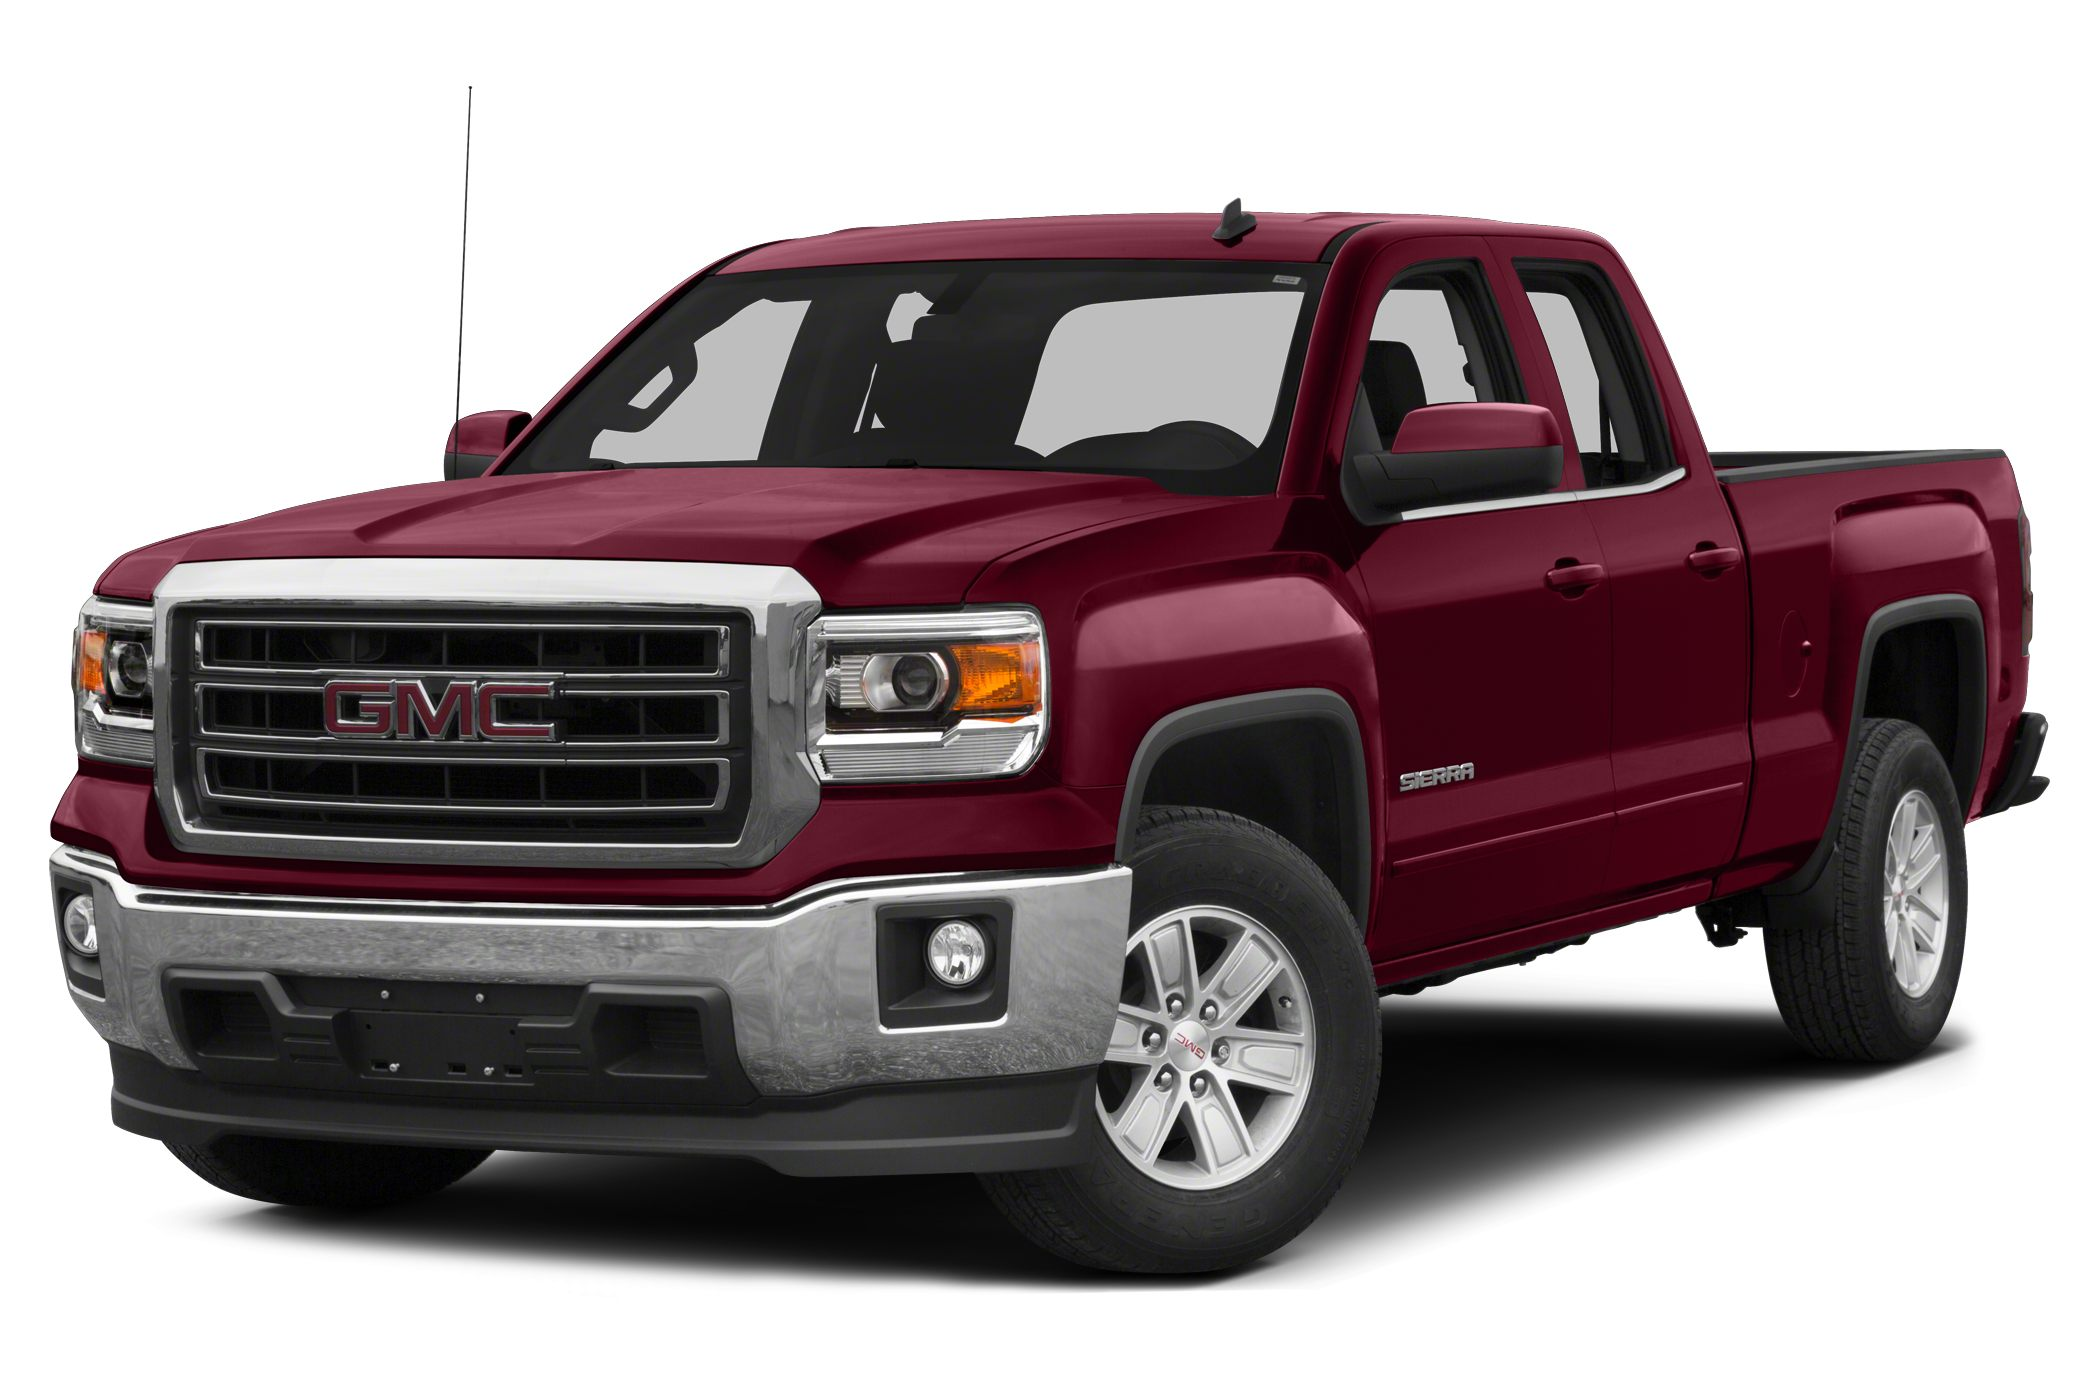 2015 GMC Sierra 1500 SLT Crew Cab Pickup for sale in Murphy for $52,065 with 100 miles